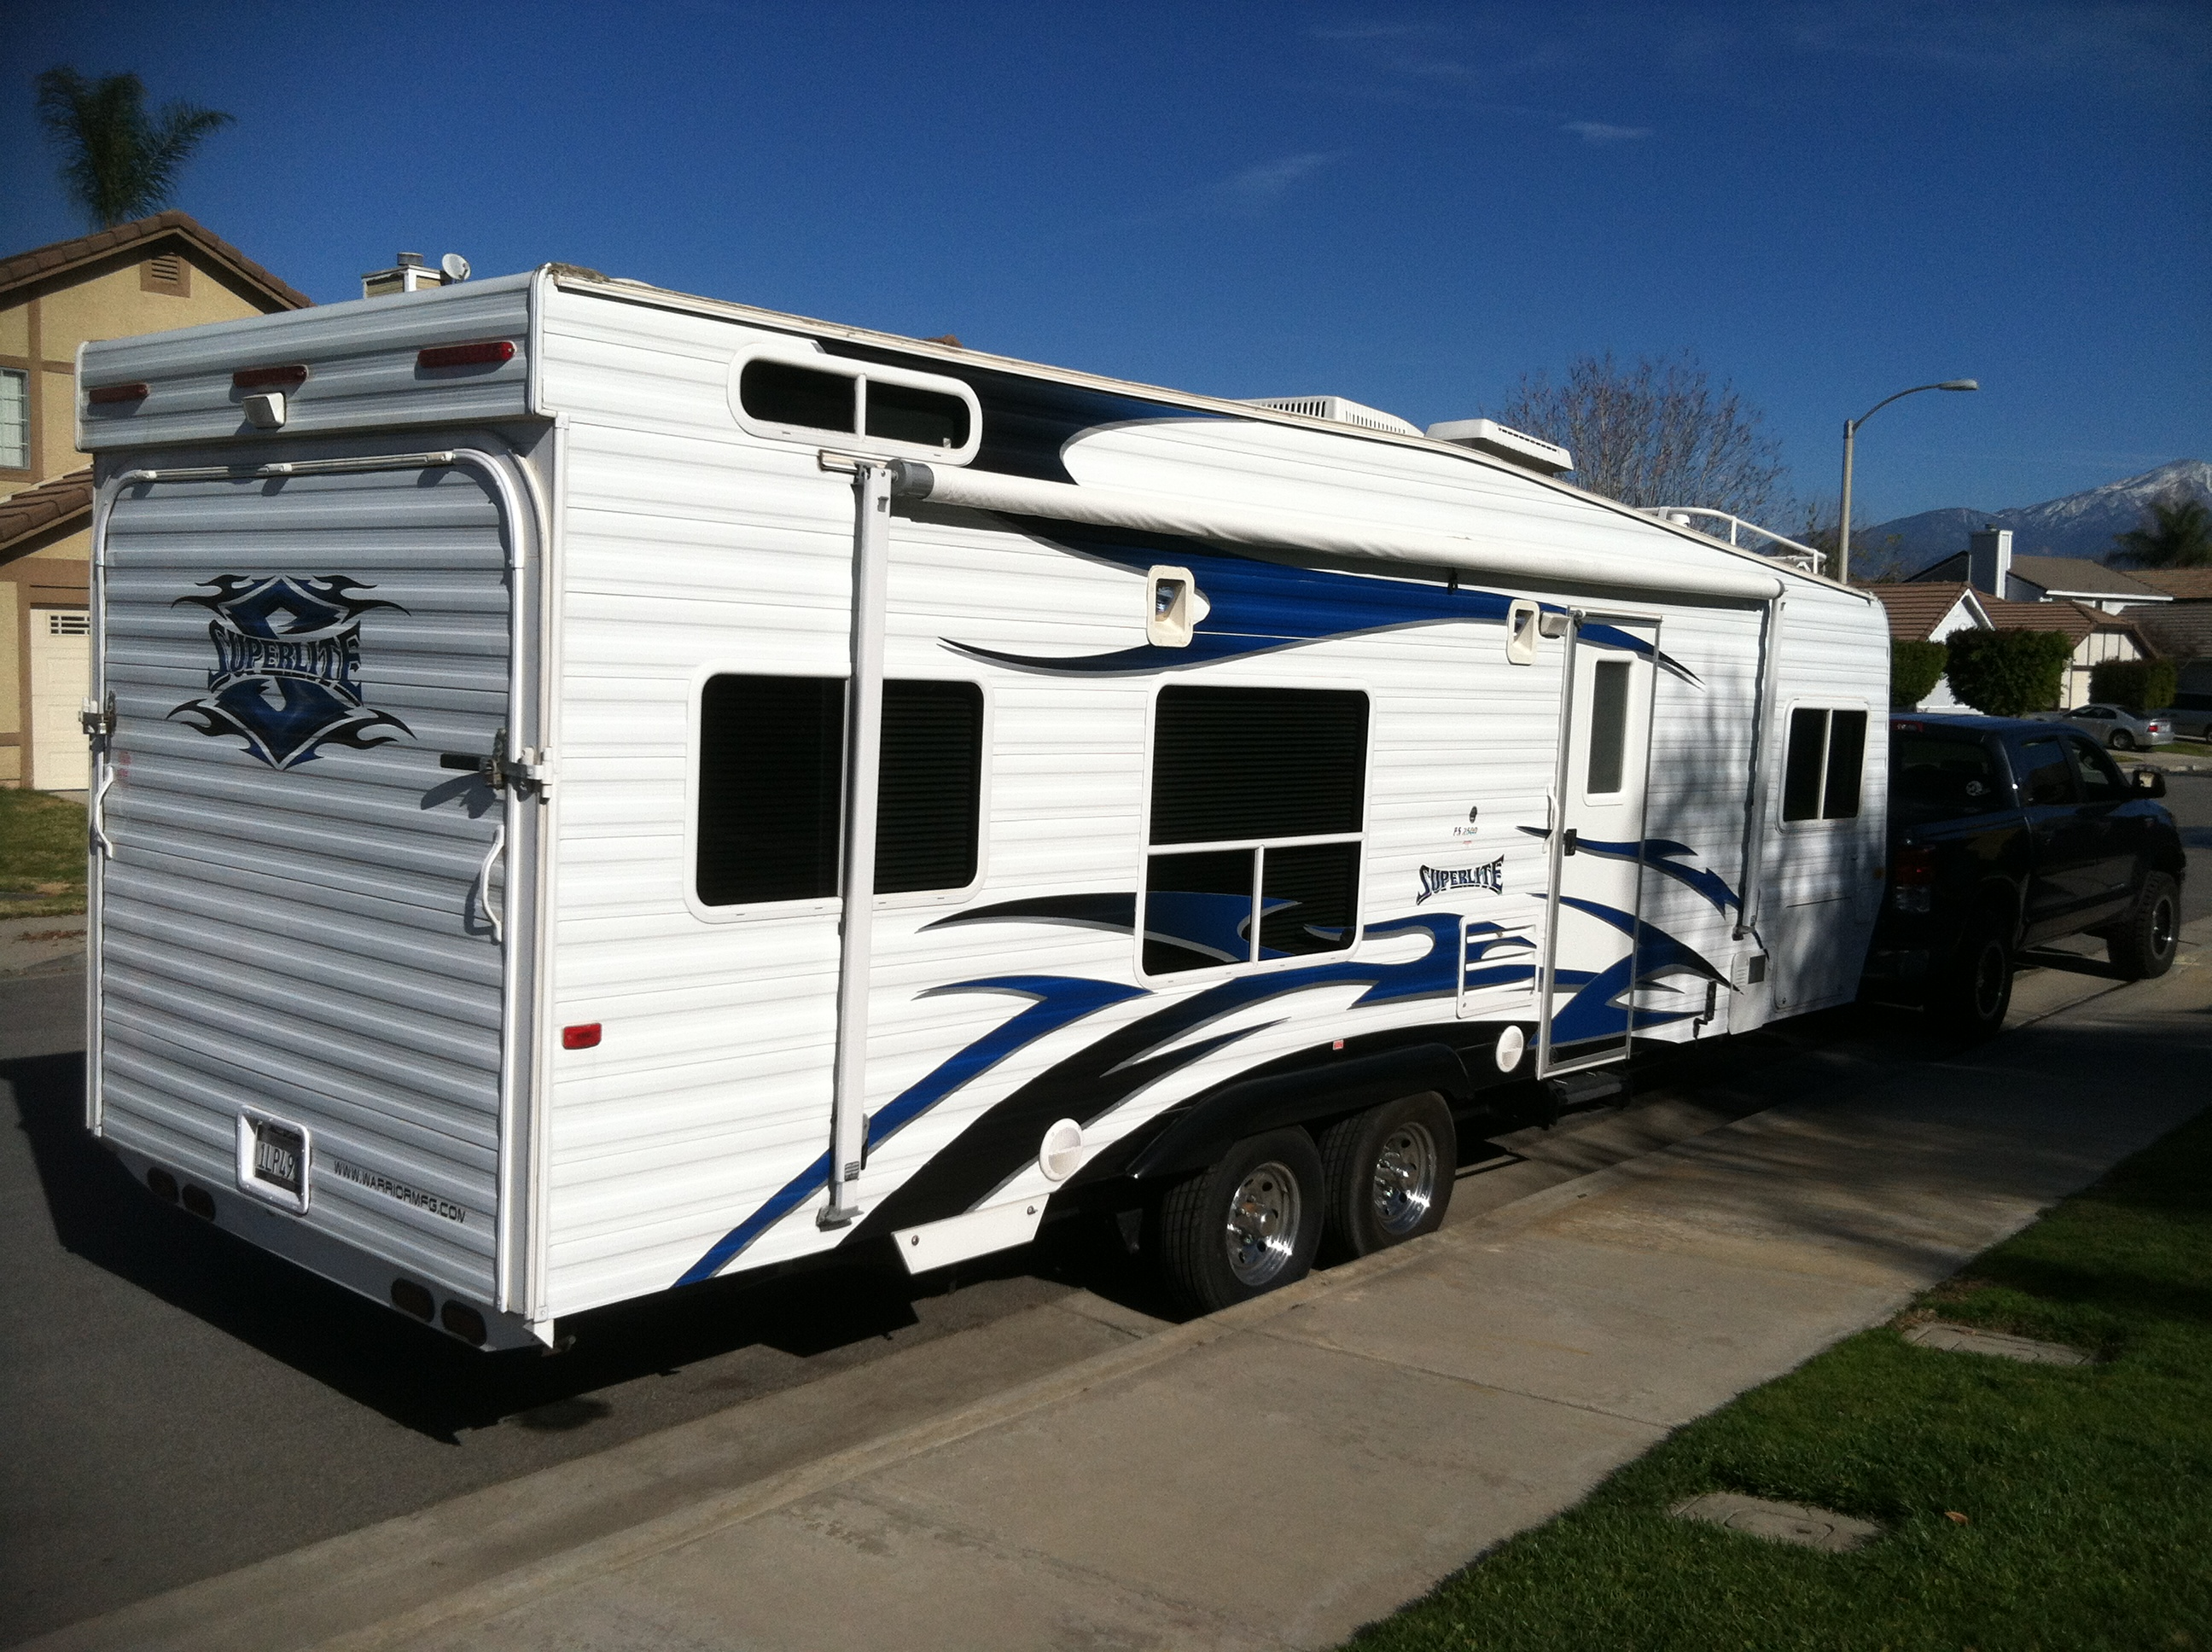 Classified Ads Ss Off Road Magazine Trailer Wiring Harness 4 Flat 25ft To Redo Lights 25 Ft Weekend Warrior Superlite Toy Hauler Very Clean Loaded With All Extras Real Queen Size Bed Up Front Full Bath And Shower Built In Generator